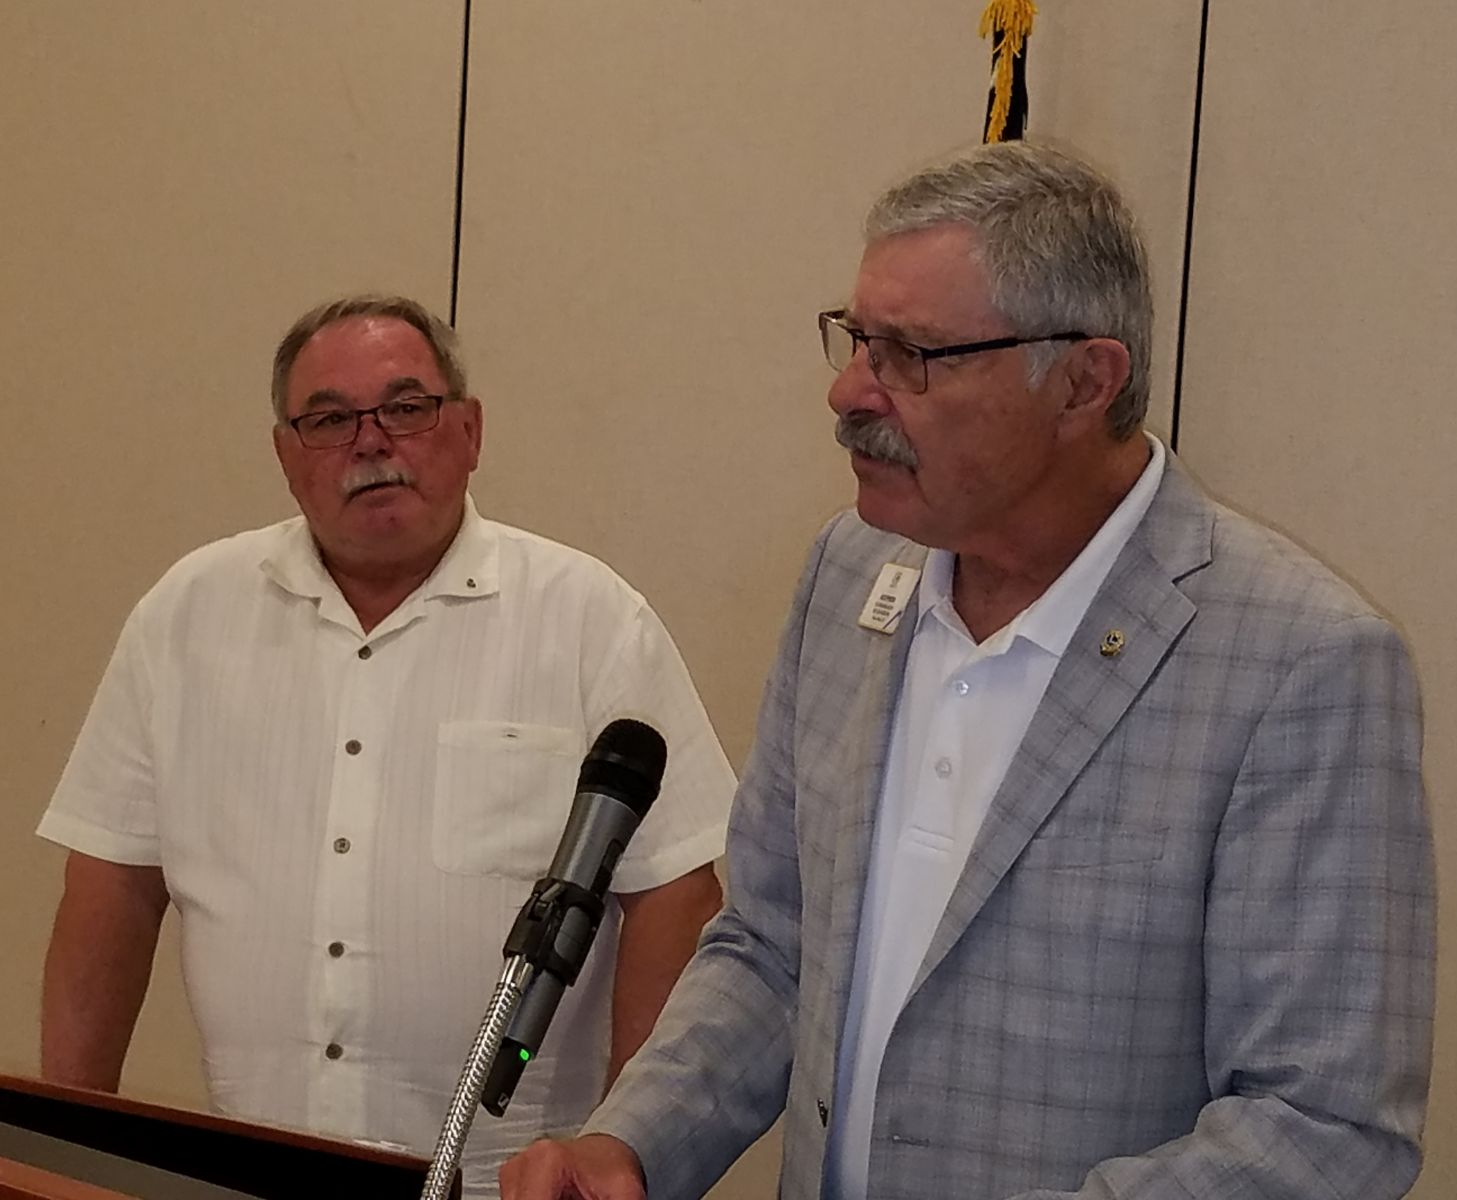 PID Jack Epperson installs Lion Phil Christopherson as the 2019-2020 Carson Citiy Host Club President.